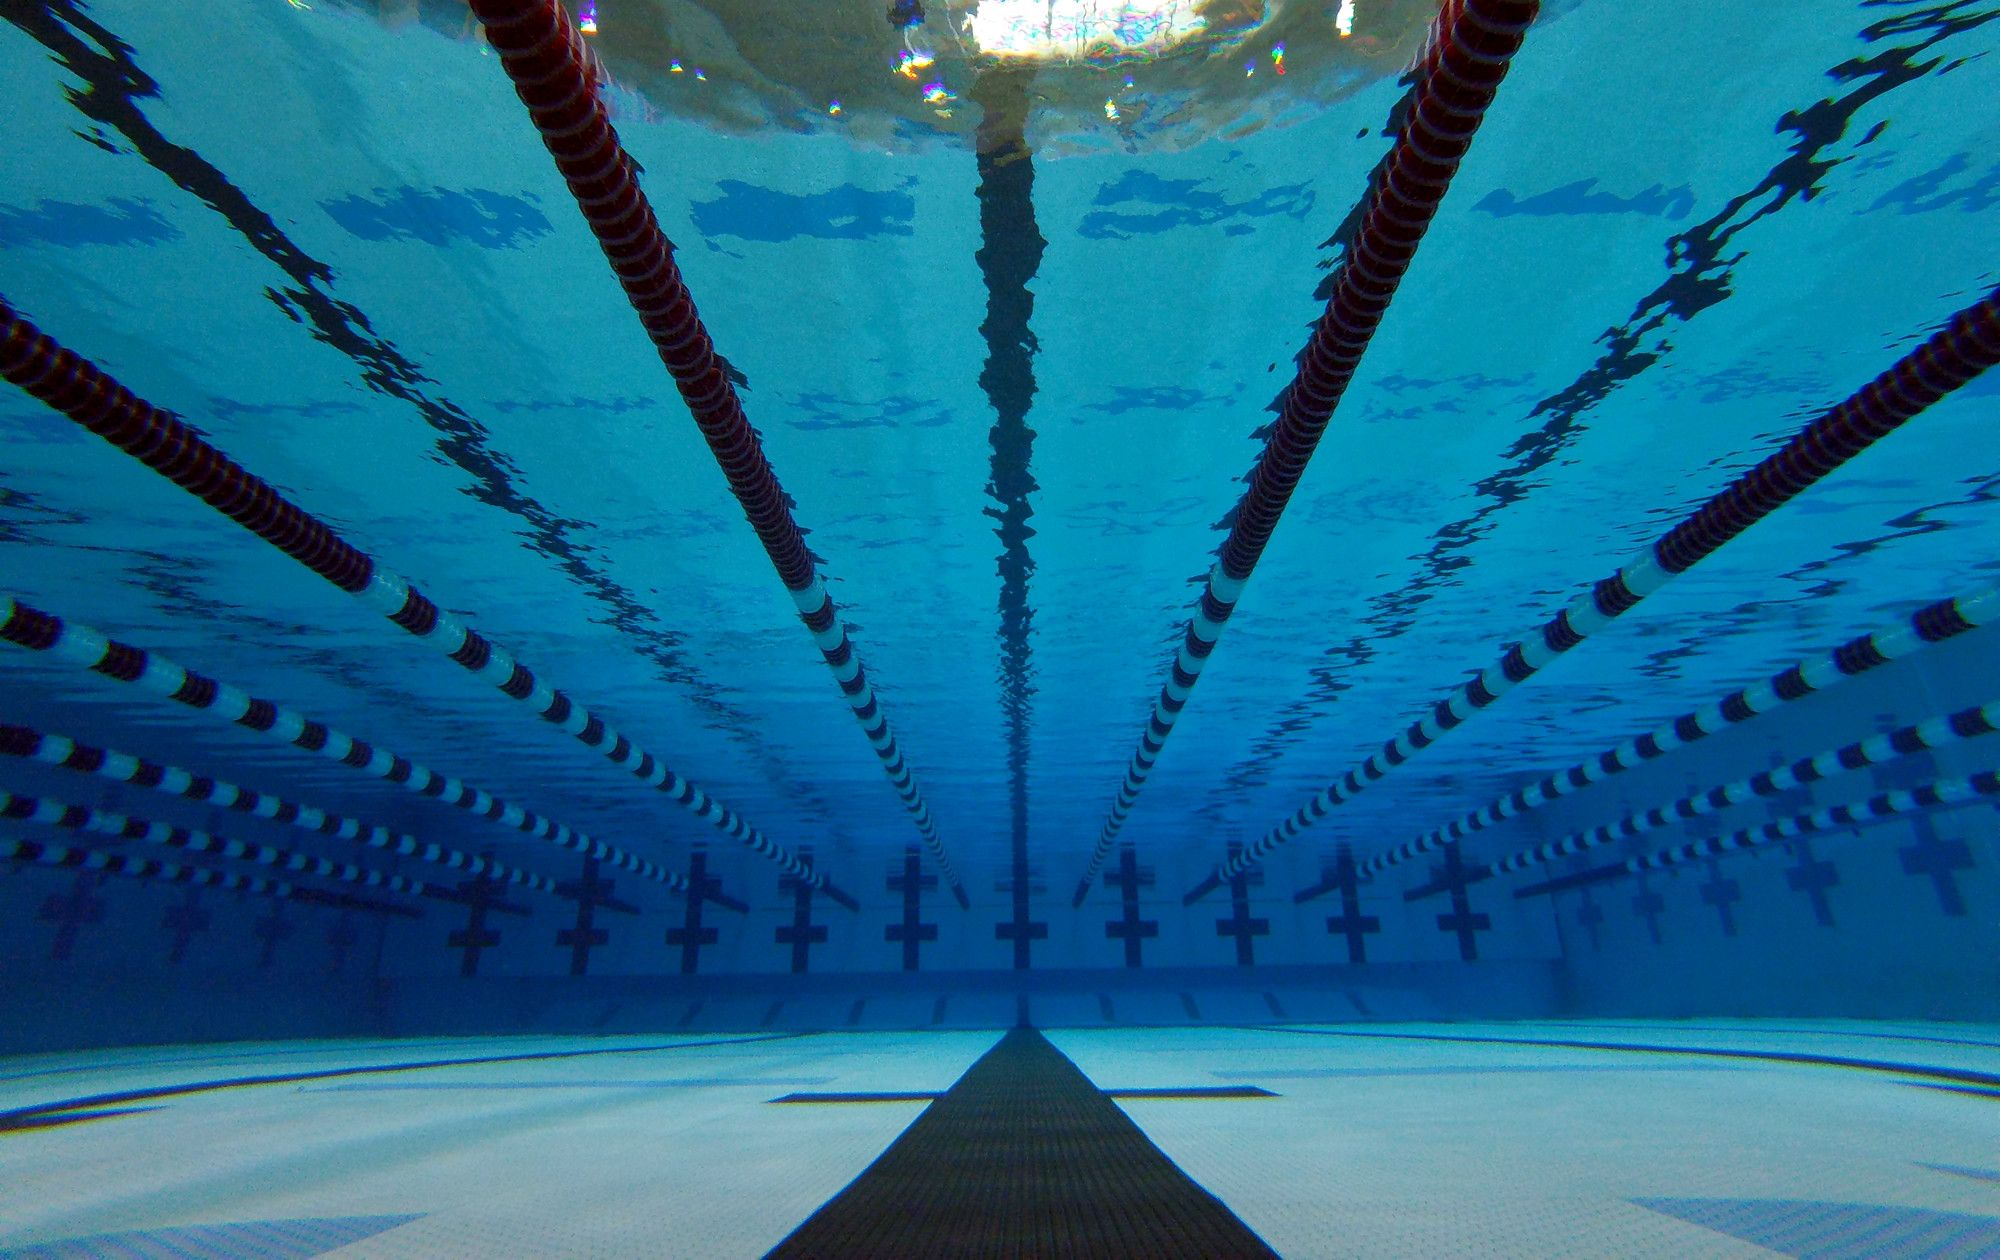 Swimming wallpaper – Exactly What Do You Need?